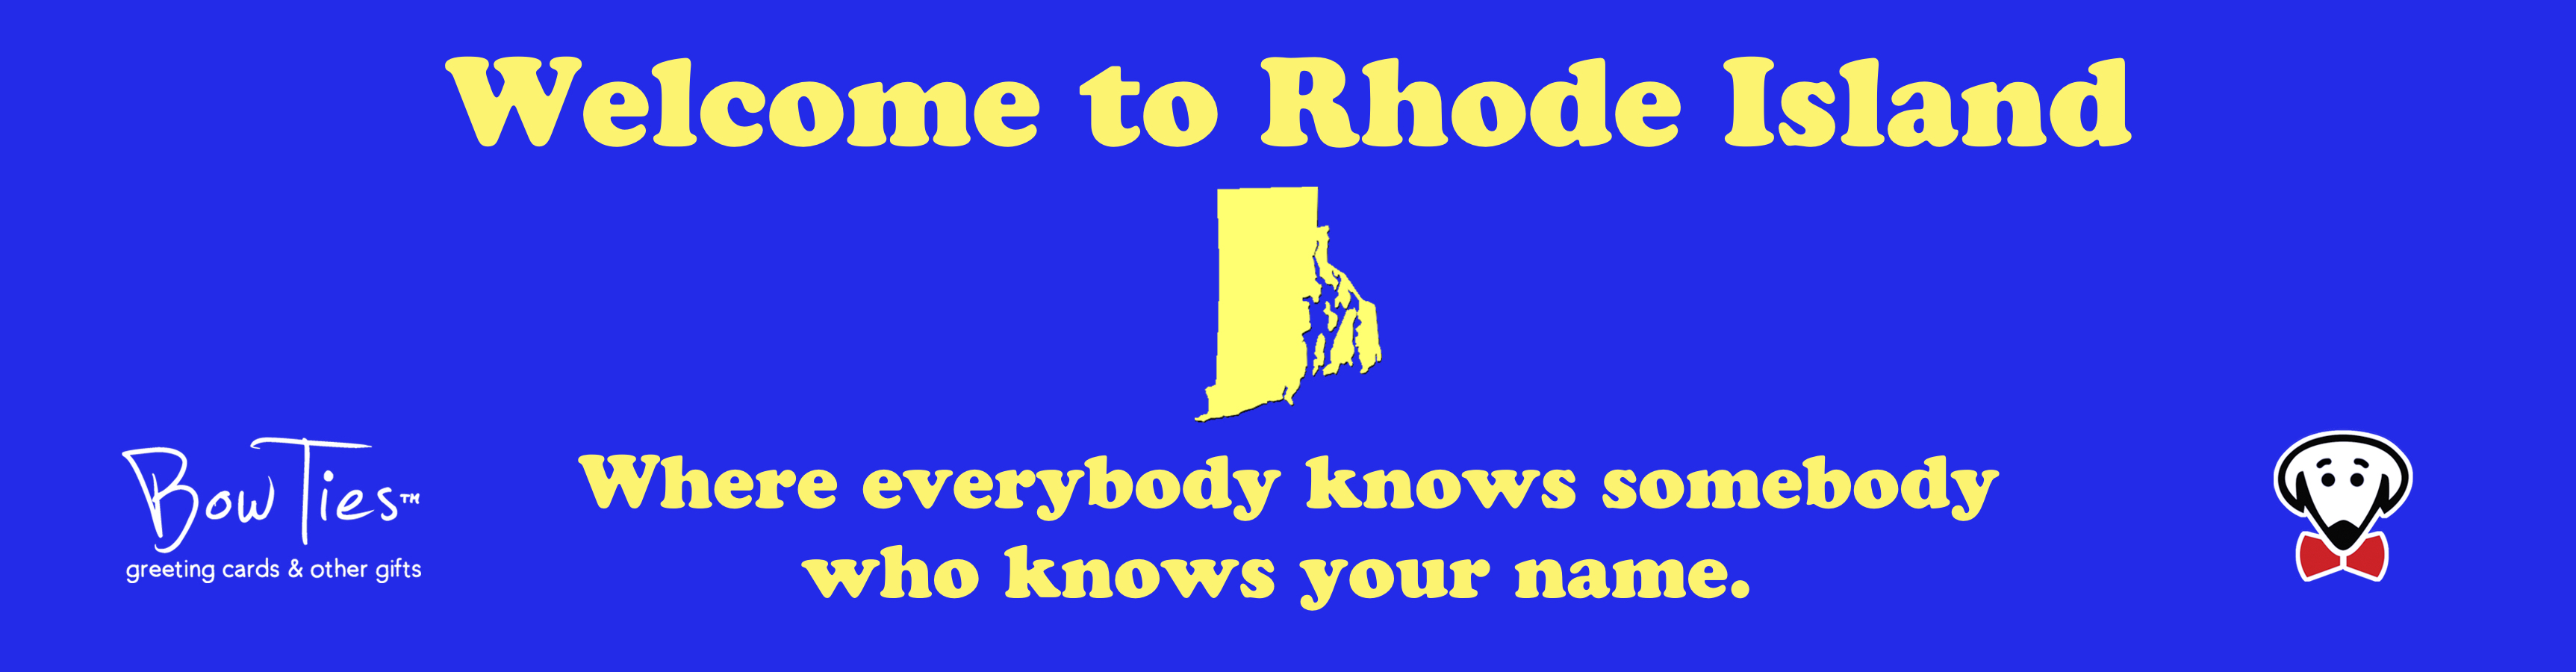 Welcome to Rhode Island…Where everybody knows someone who knows your name. – sticker